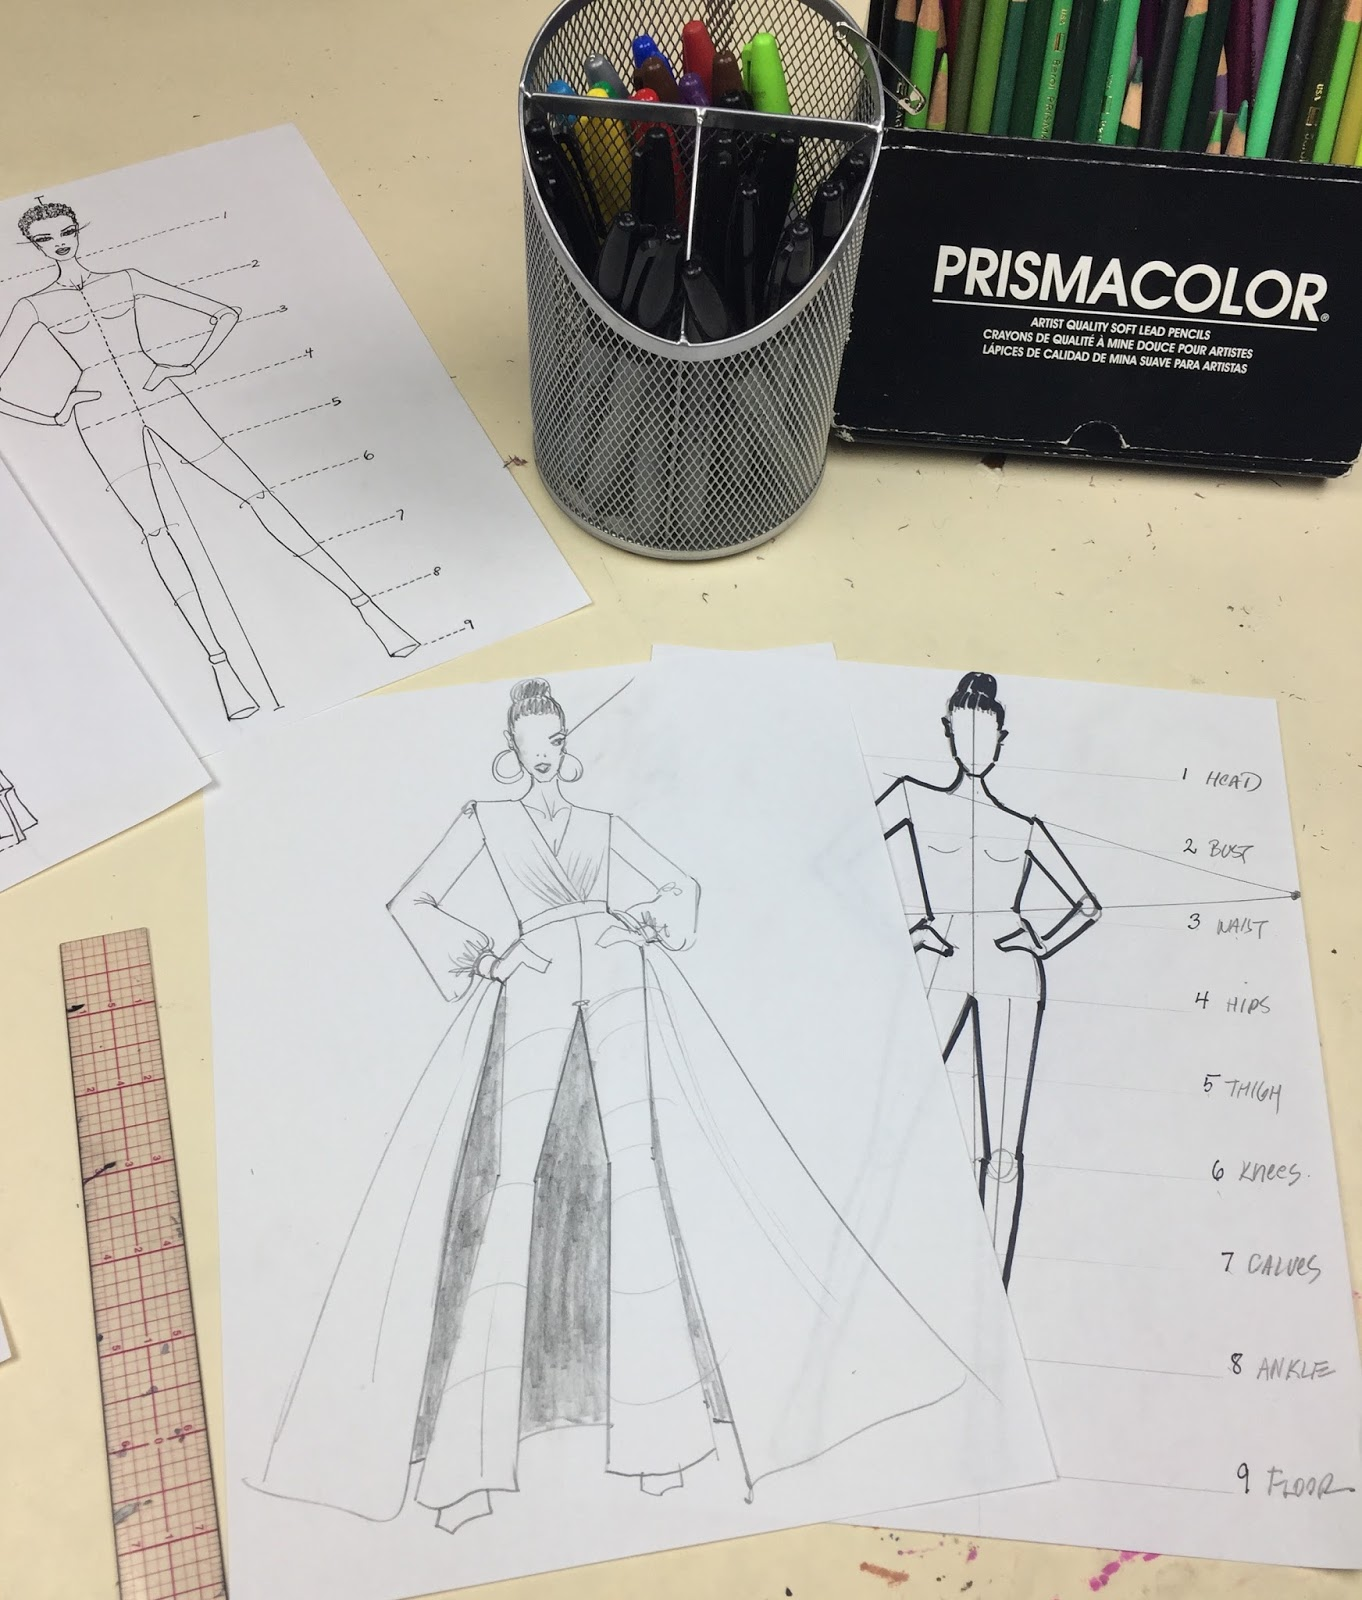 FASHION SCHOOL WITH NICK     NEW VIDEO  How To Draw a FASHION     From Croquis to   Couture Jumpsuit  Watch my  Fashion School With Nick  Verreos  YouTube Video  How To Draw a Fashion Croquis  to find out how YOU  can do it